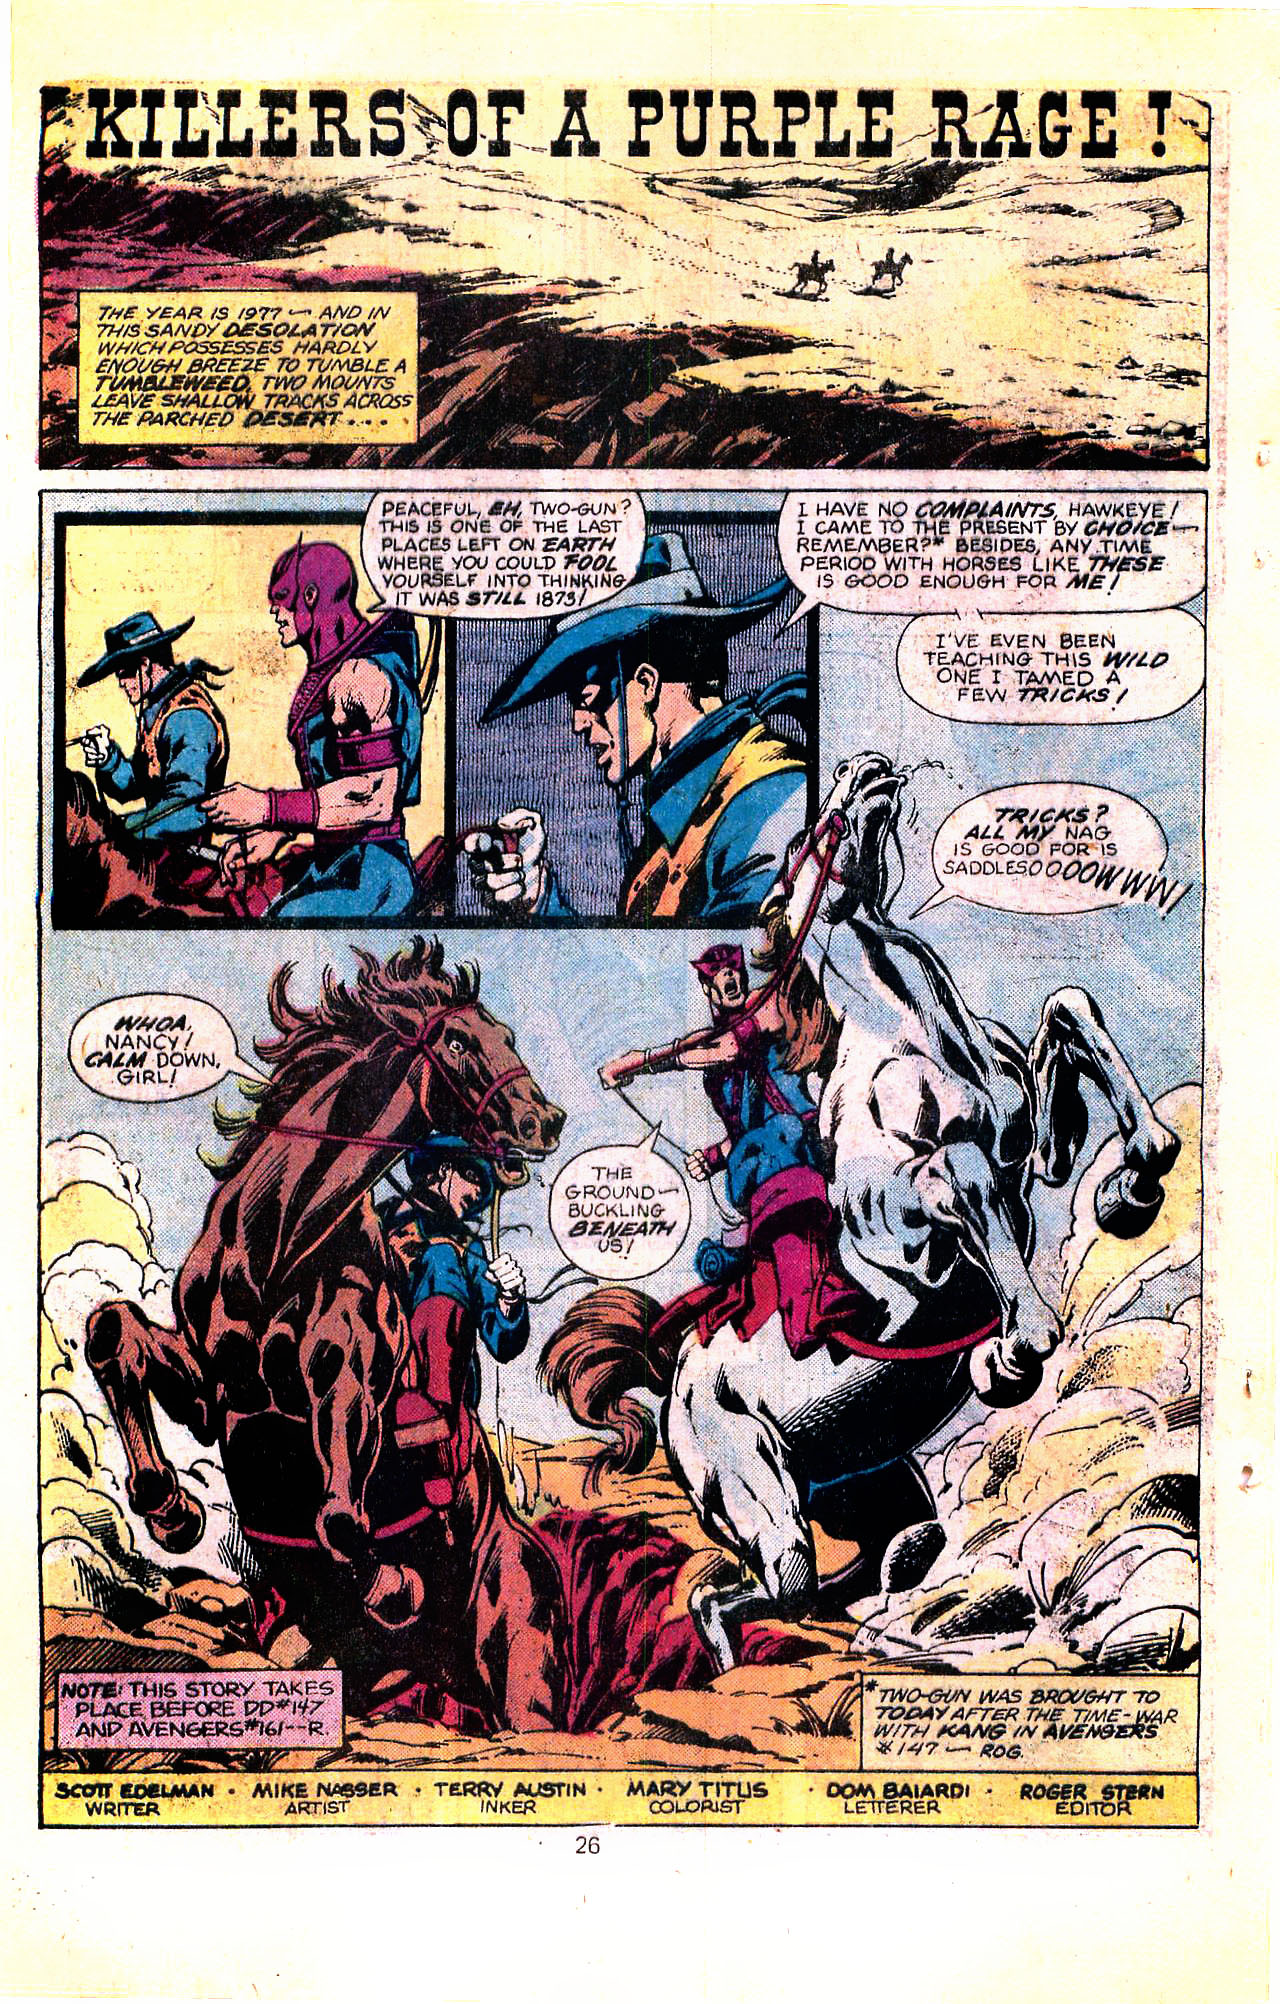 Marvel Tales (1964) #100 pg.26, penciled by Mike Nasser & inked by Terry Austin.